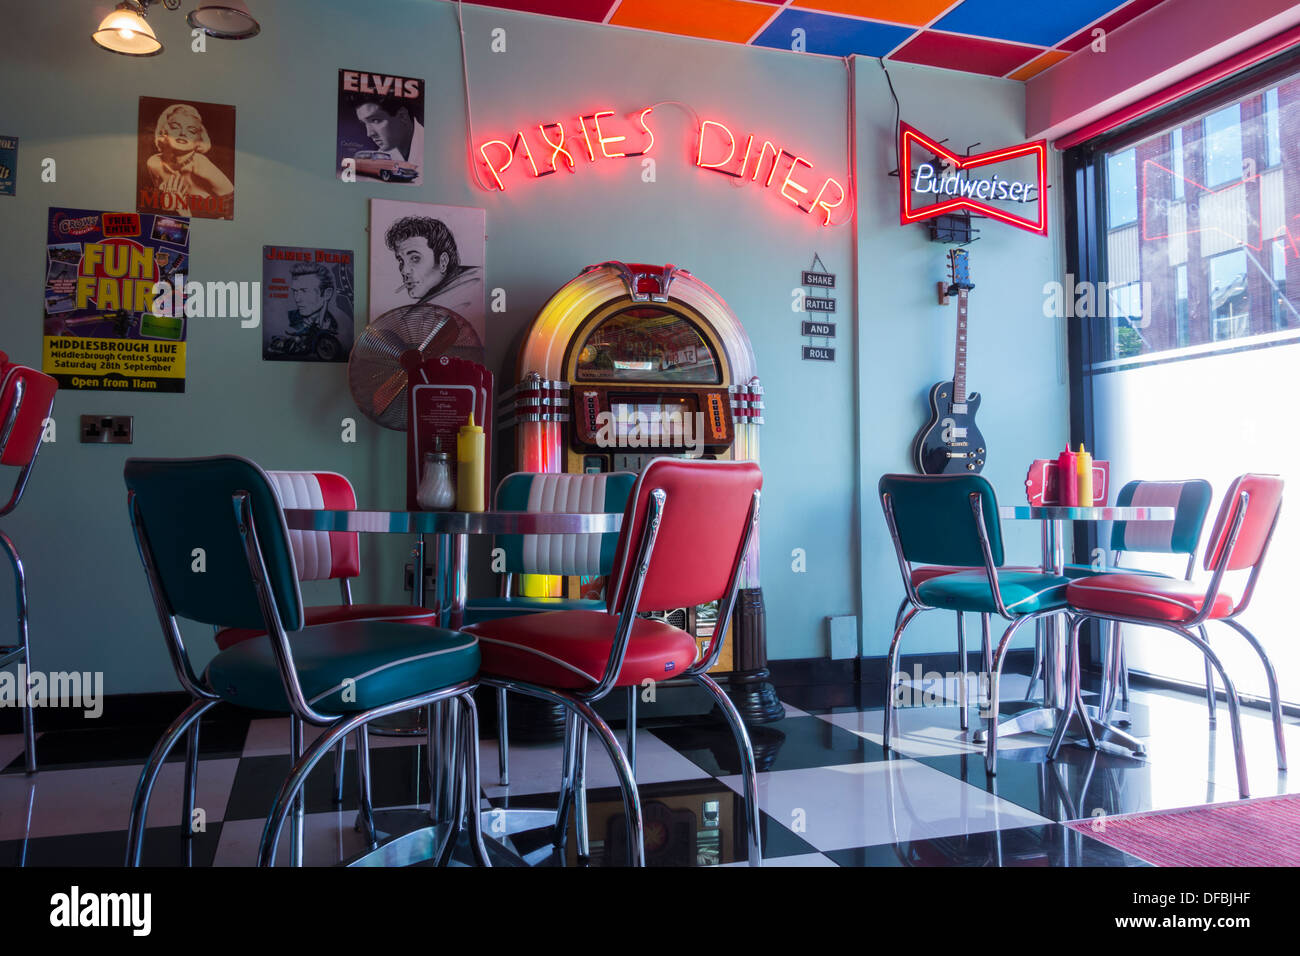 Pixies Diner on Linthorpe road, Middlesbrough, England, UK - Stock Image